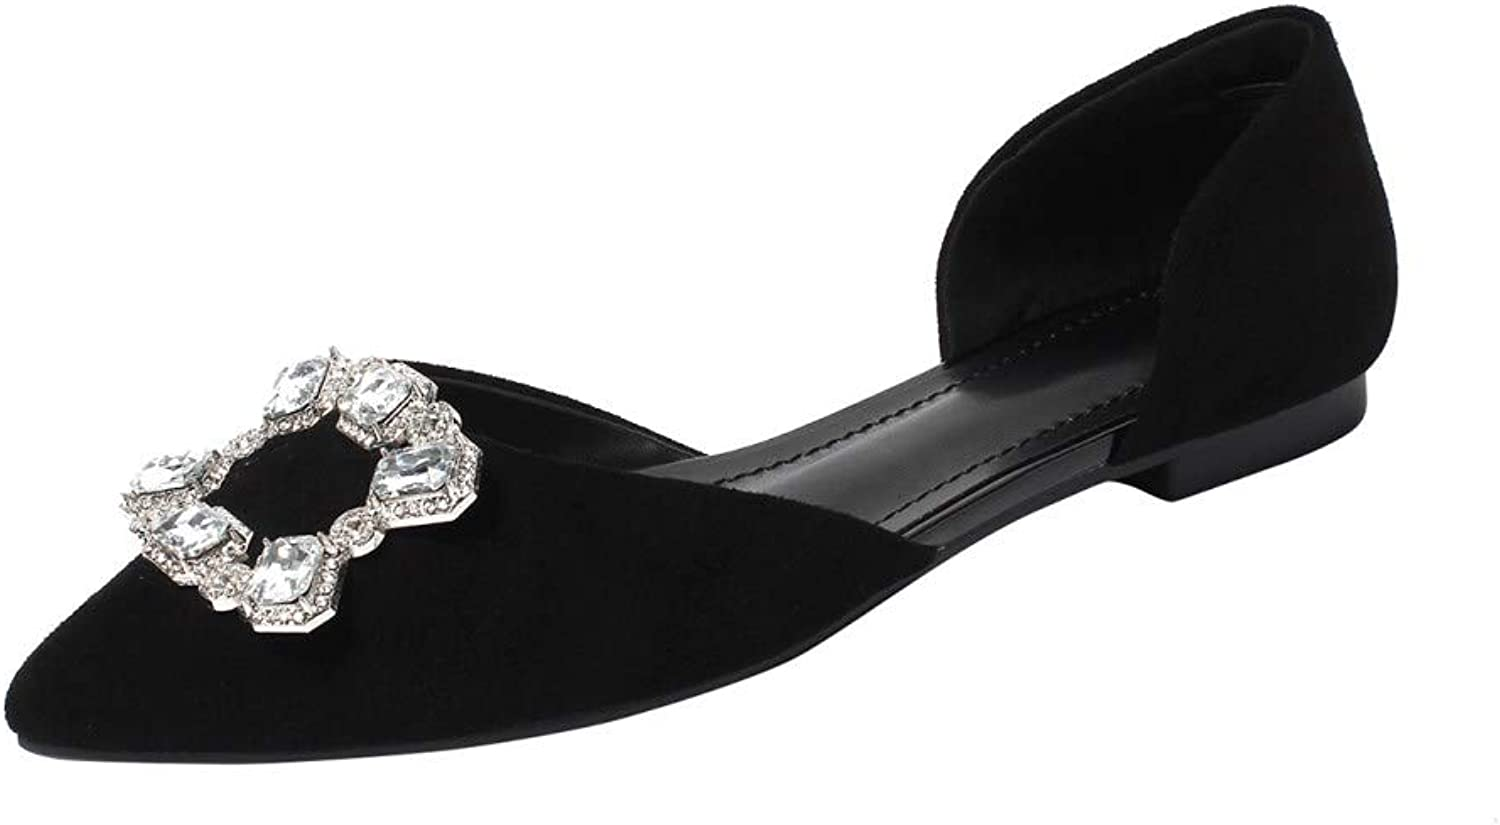 Nine Seven Women's Genuine Leather Pointed Toe Flat Heel Handmade Comfortable Walking Pumps with Crystal